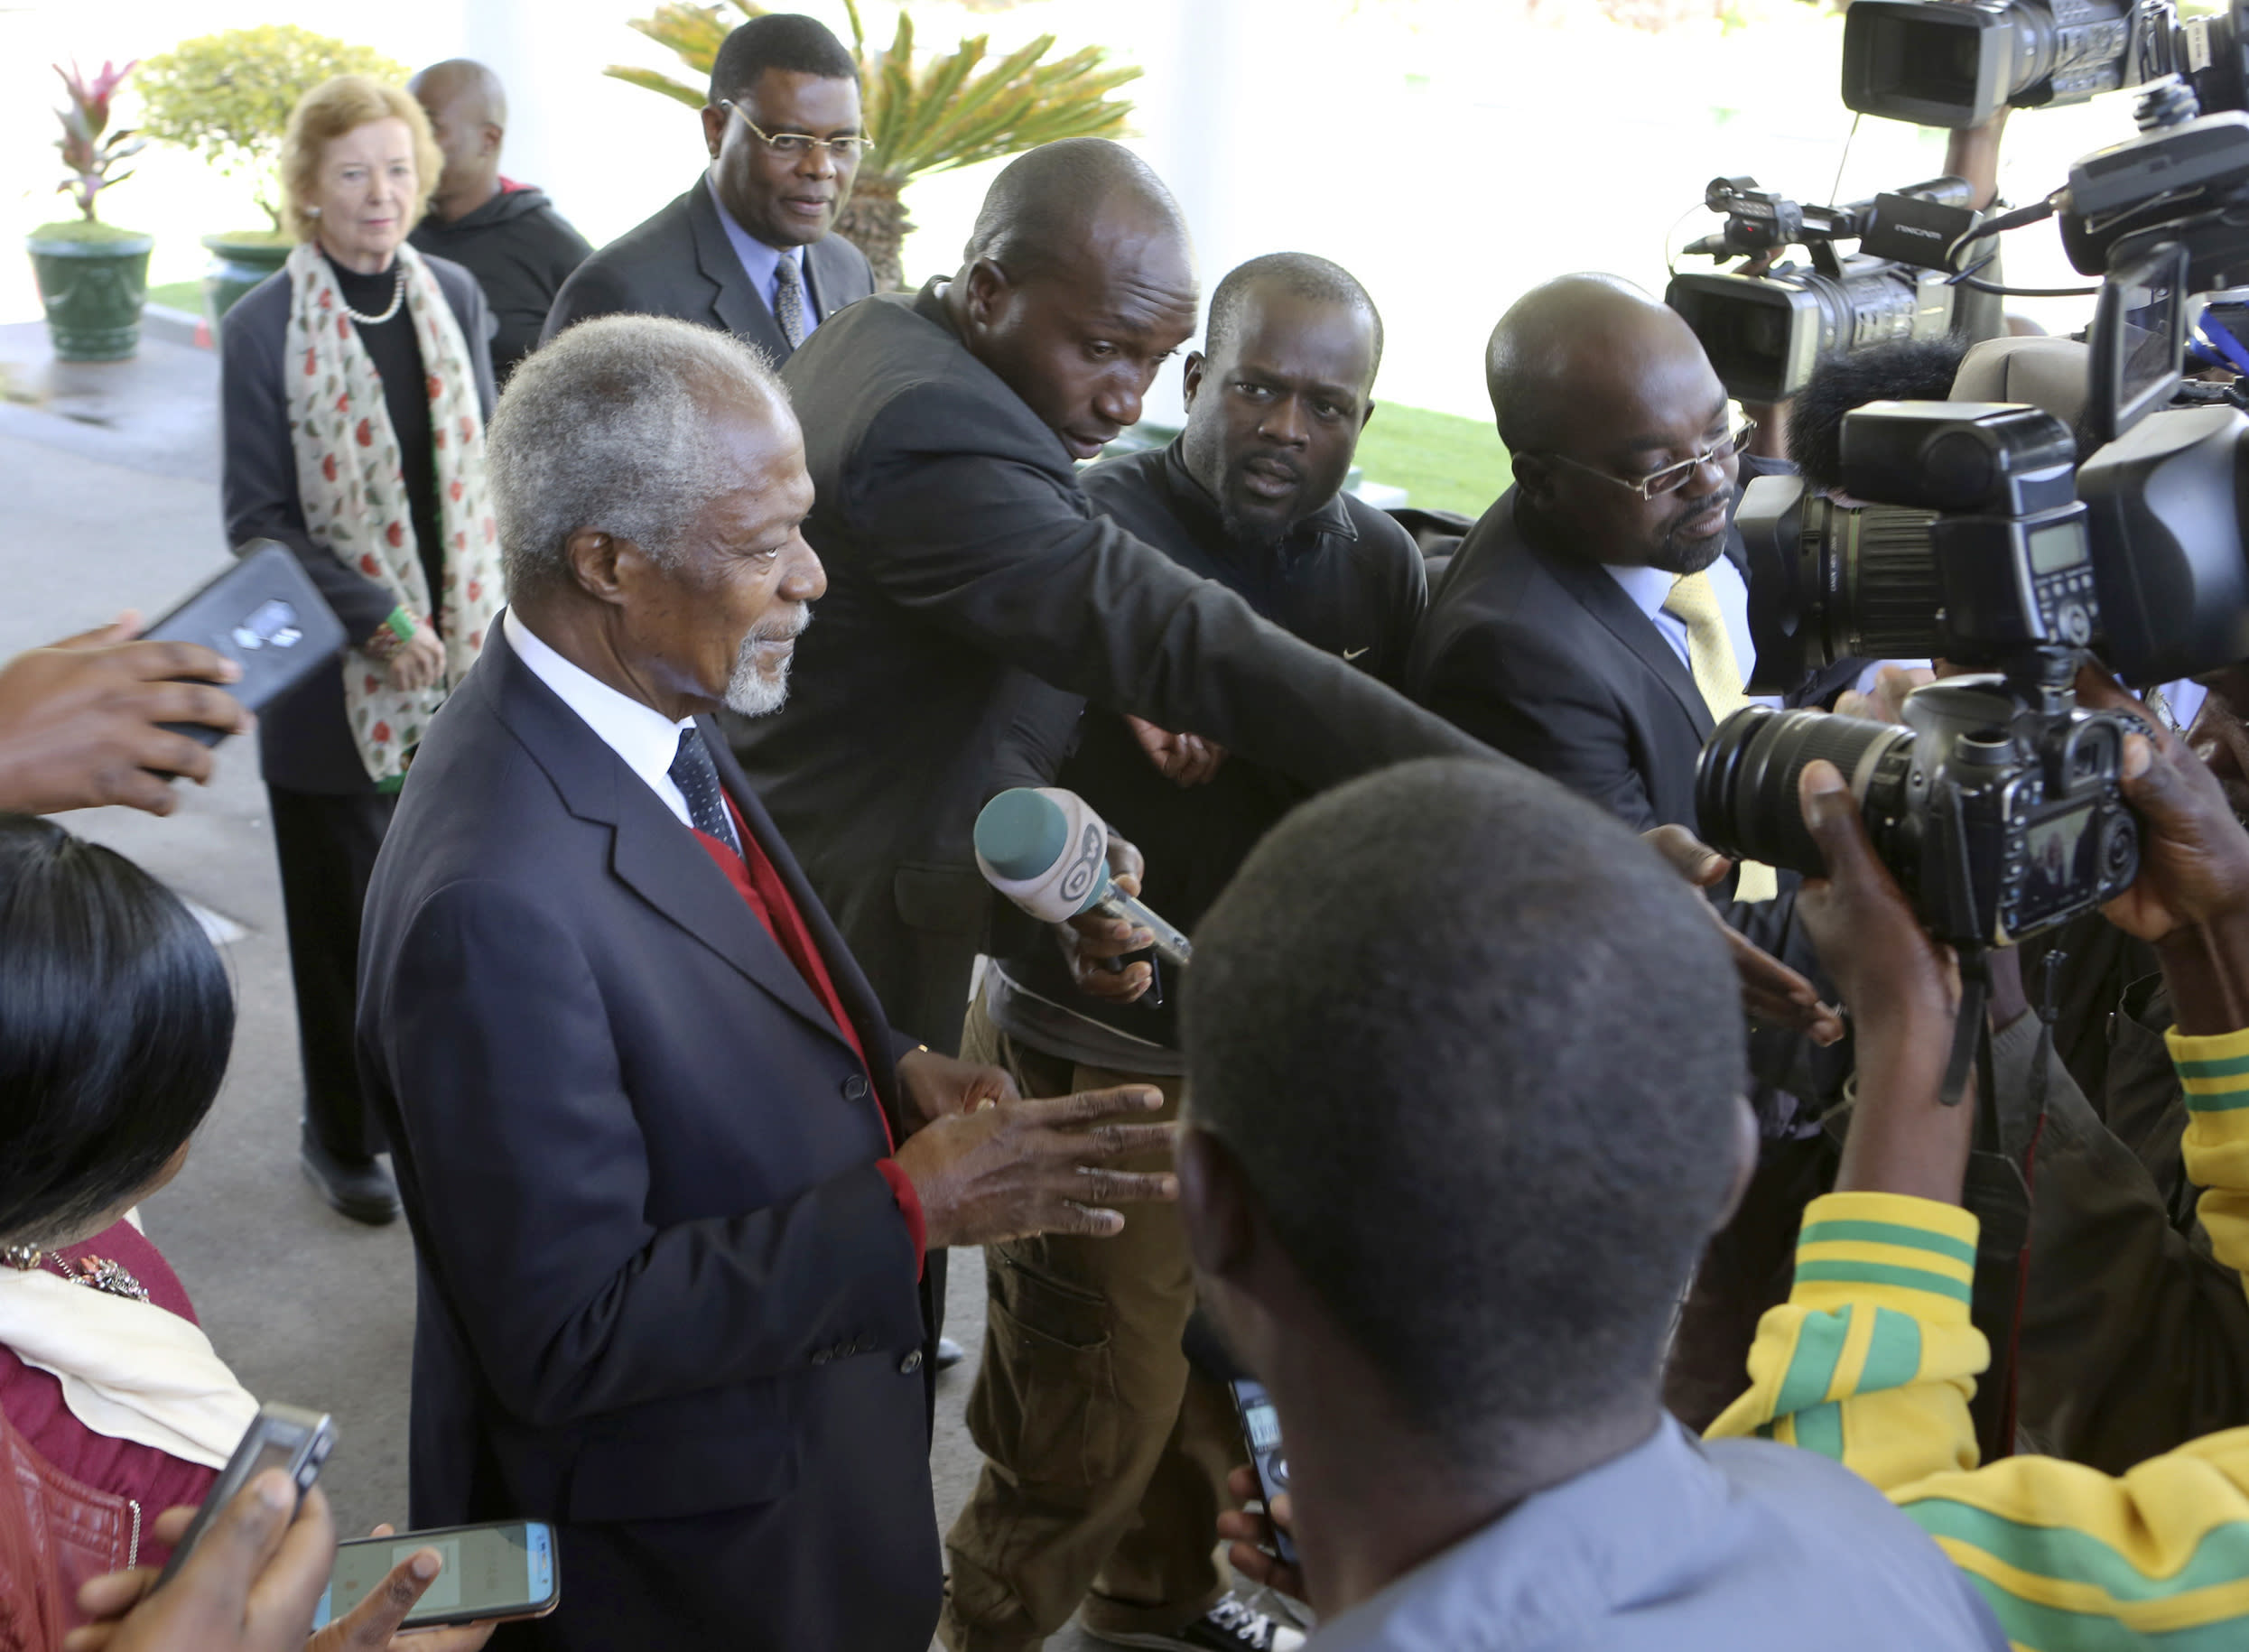 FILE - In this file photo dated Friday, July, 20, 2018, former United Nations Secretary General Kofi Annan, left, speaks to reporters after his meeting with Zimbabwean President Emmerson Mnangagwa at State House in Harare, Zimbabwe, as the country prepares to hold elections upcoming July 30. Annan, one of the world's most celebrated diplomats and a charismatic symbol of the United Nations who rose through its ranks to become the first black African secretary-general, has died aged 80, according to an announcement by his foundation Saturday Aug. 18, 2018.(AP Photo/Tsvangirayi Mukwazhi, FILE)